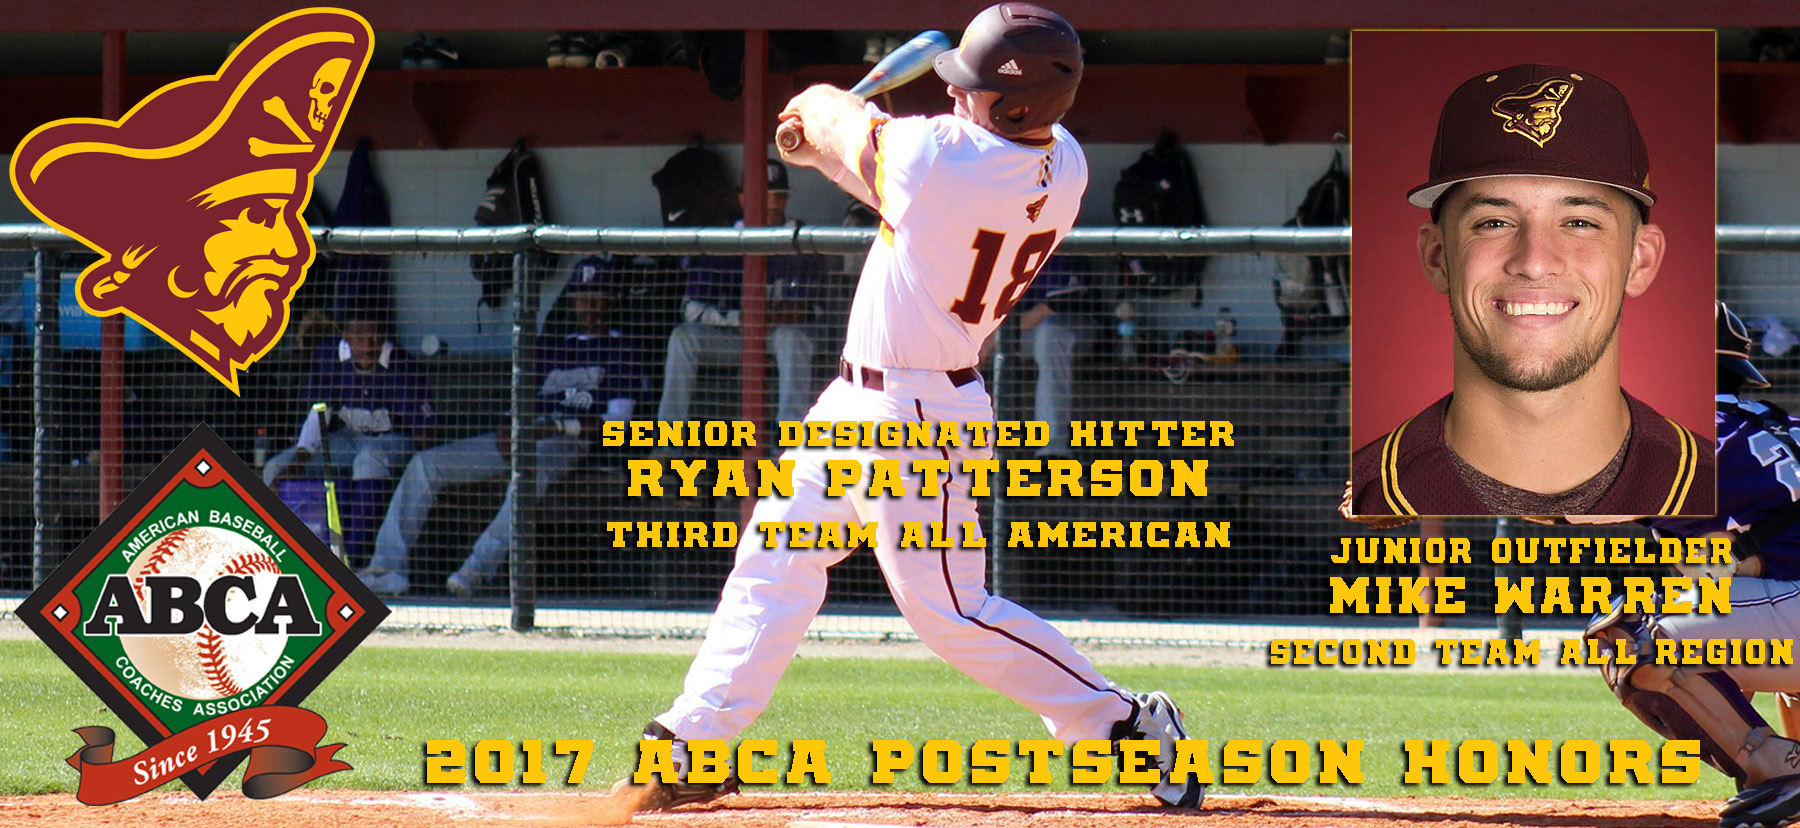 ABCA Honors Armstrong State's Patterson, Warren